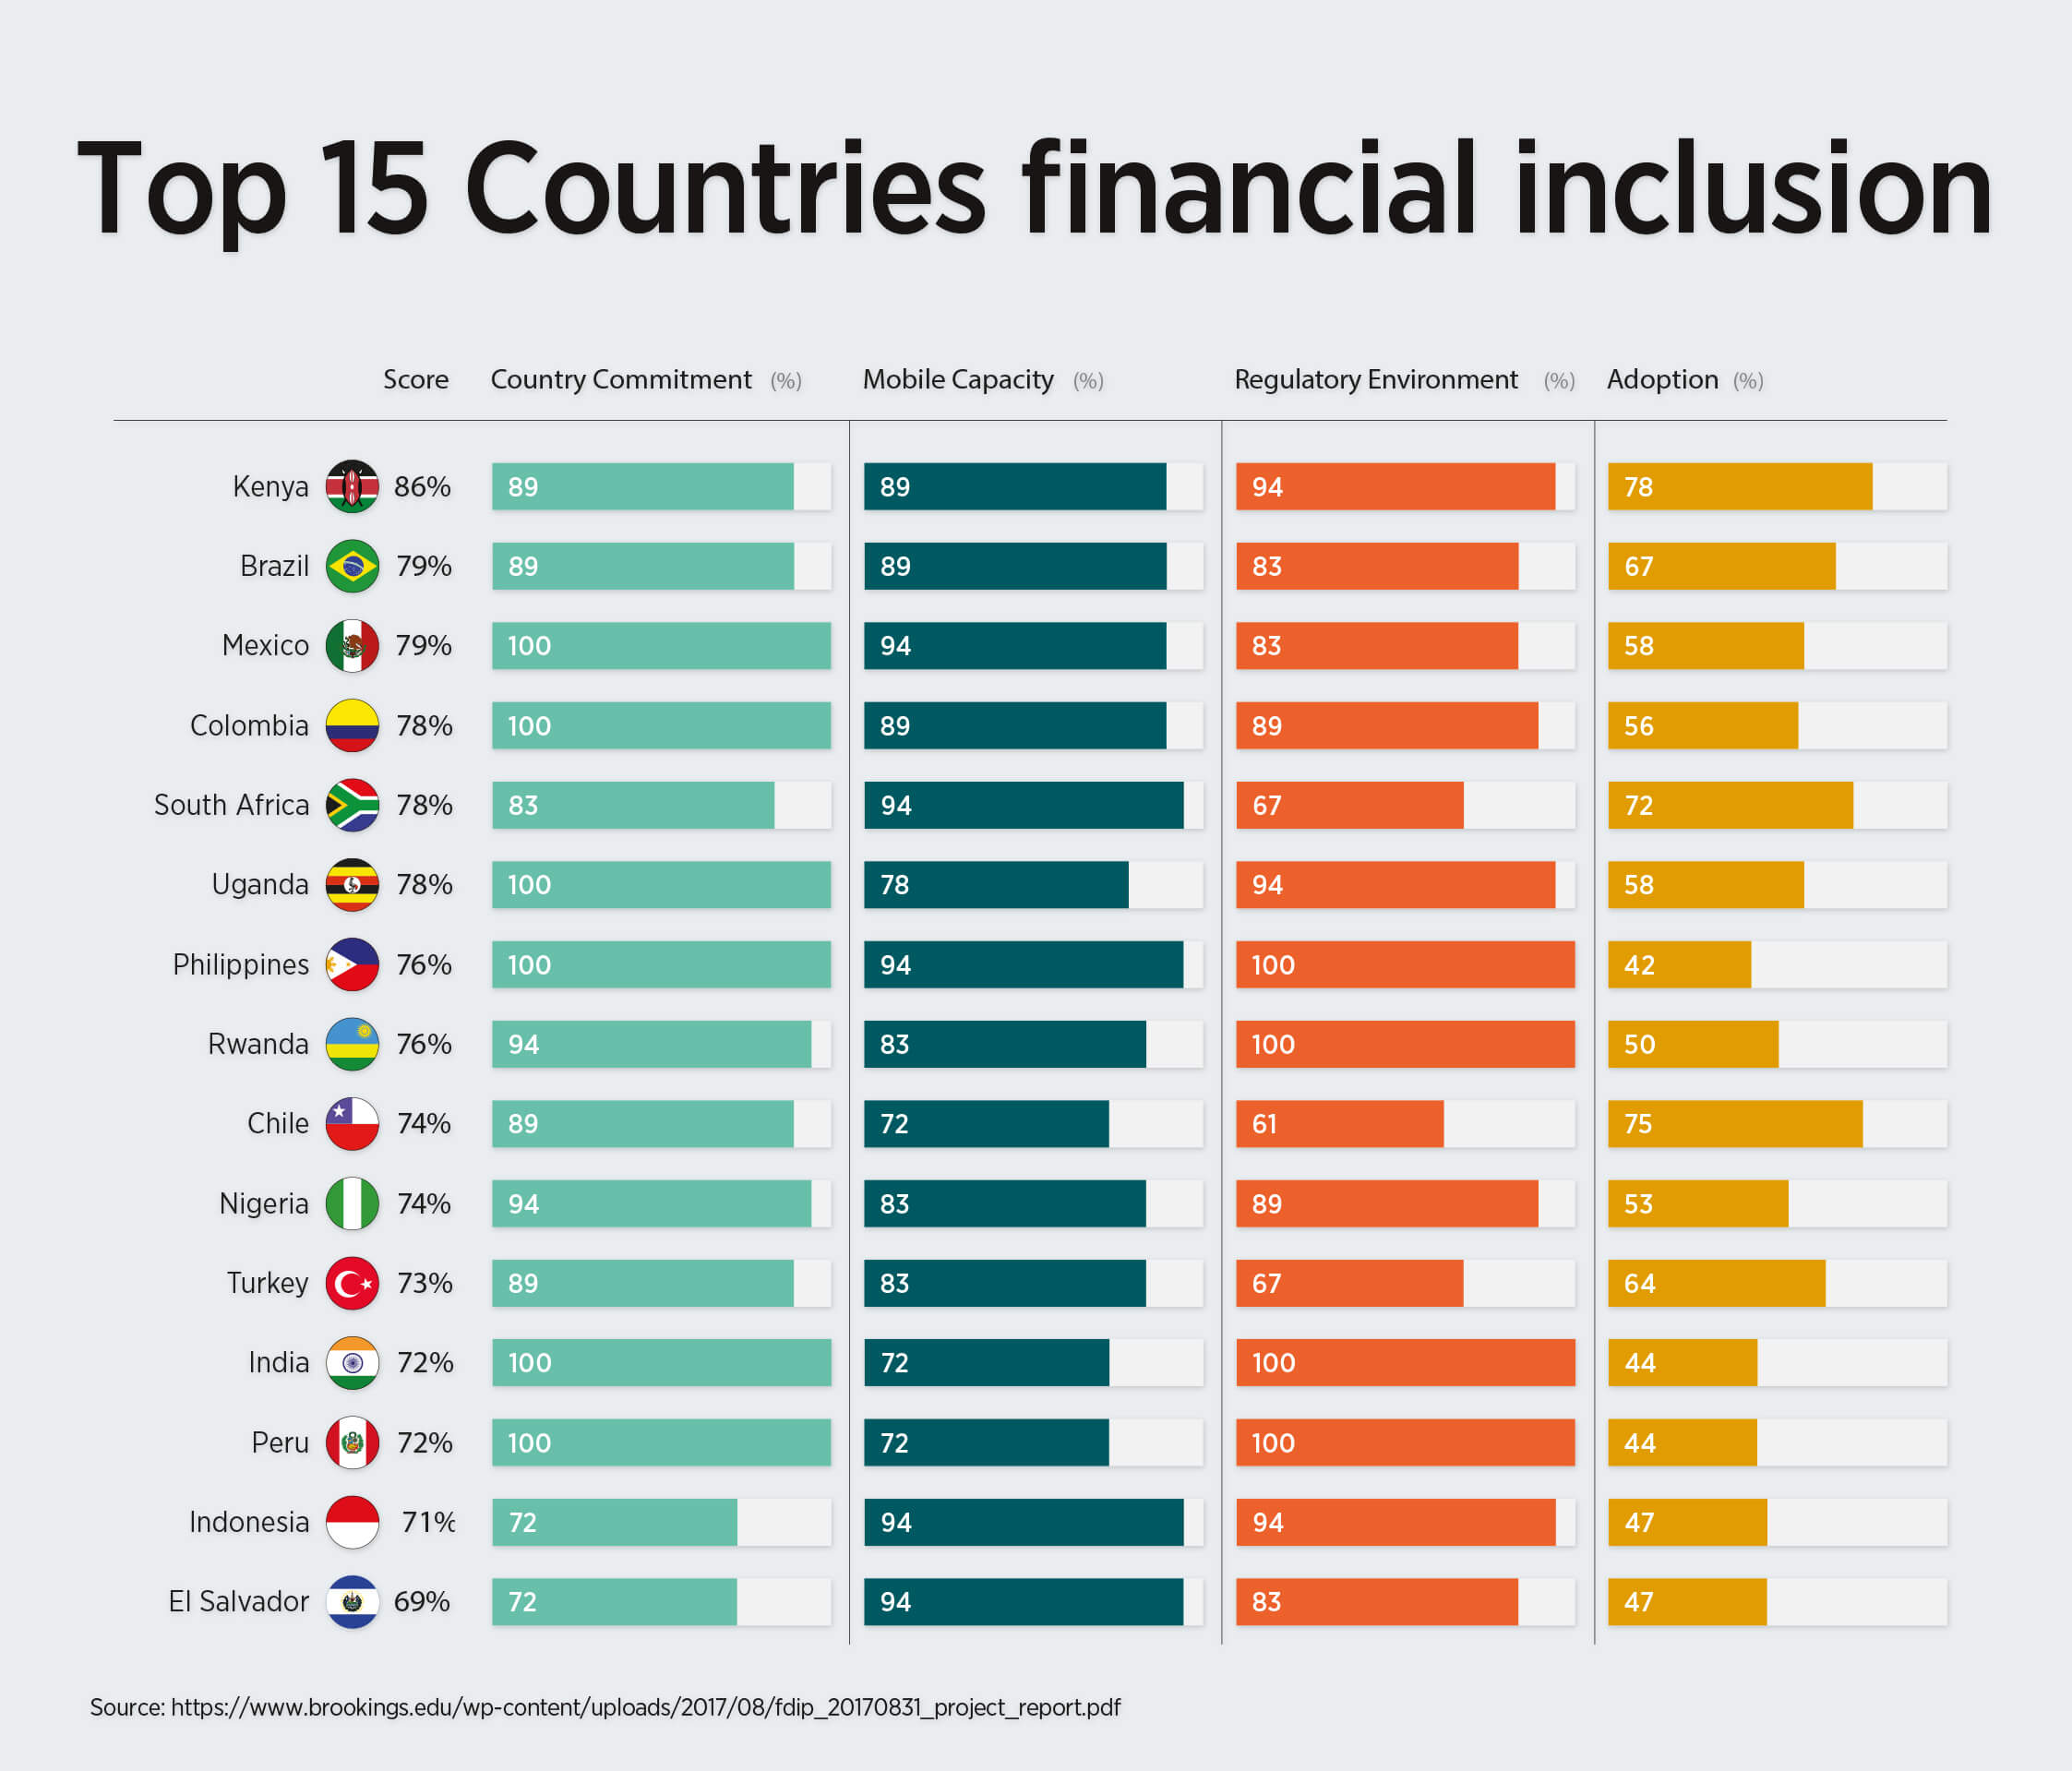 Top 15 Countries Financial Inclusion